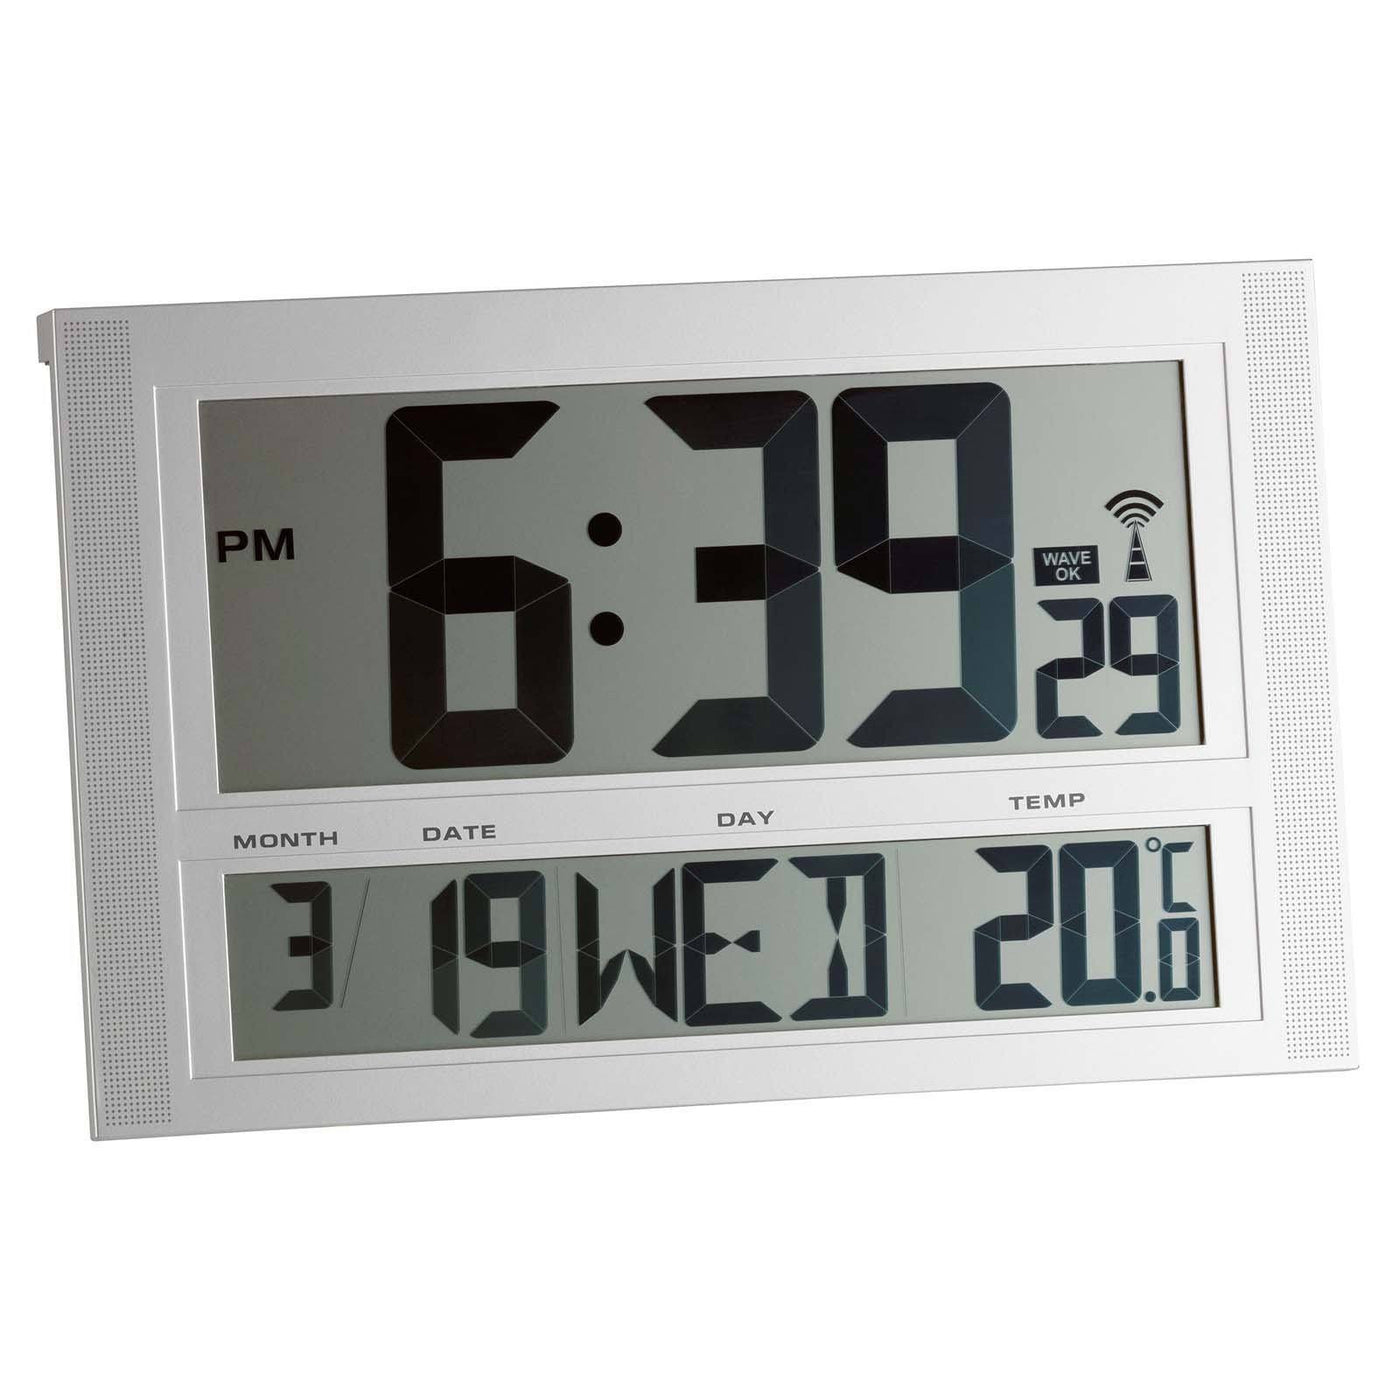 Online digital clock with date in Perth